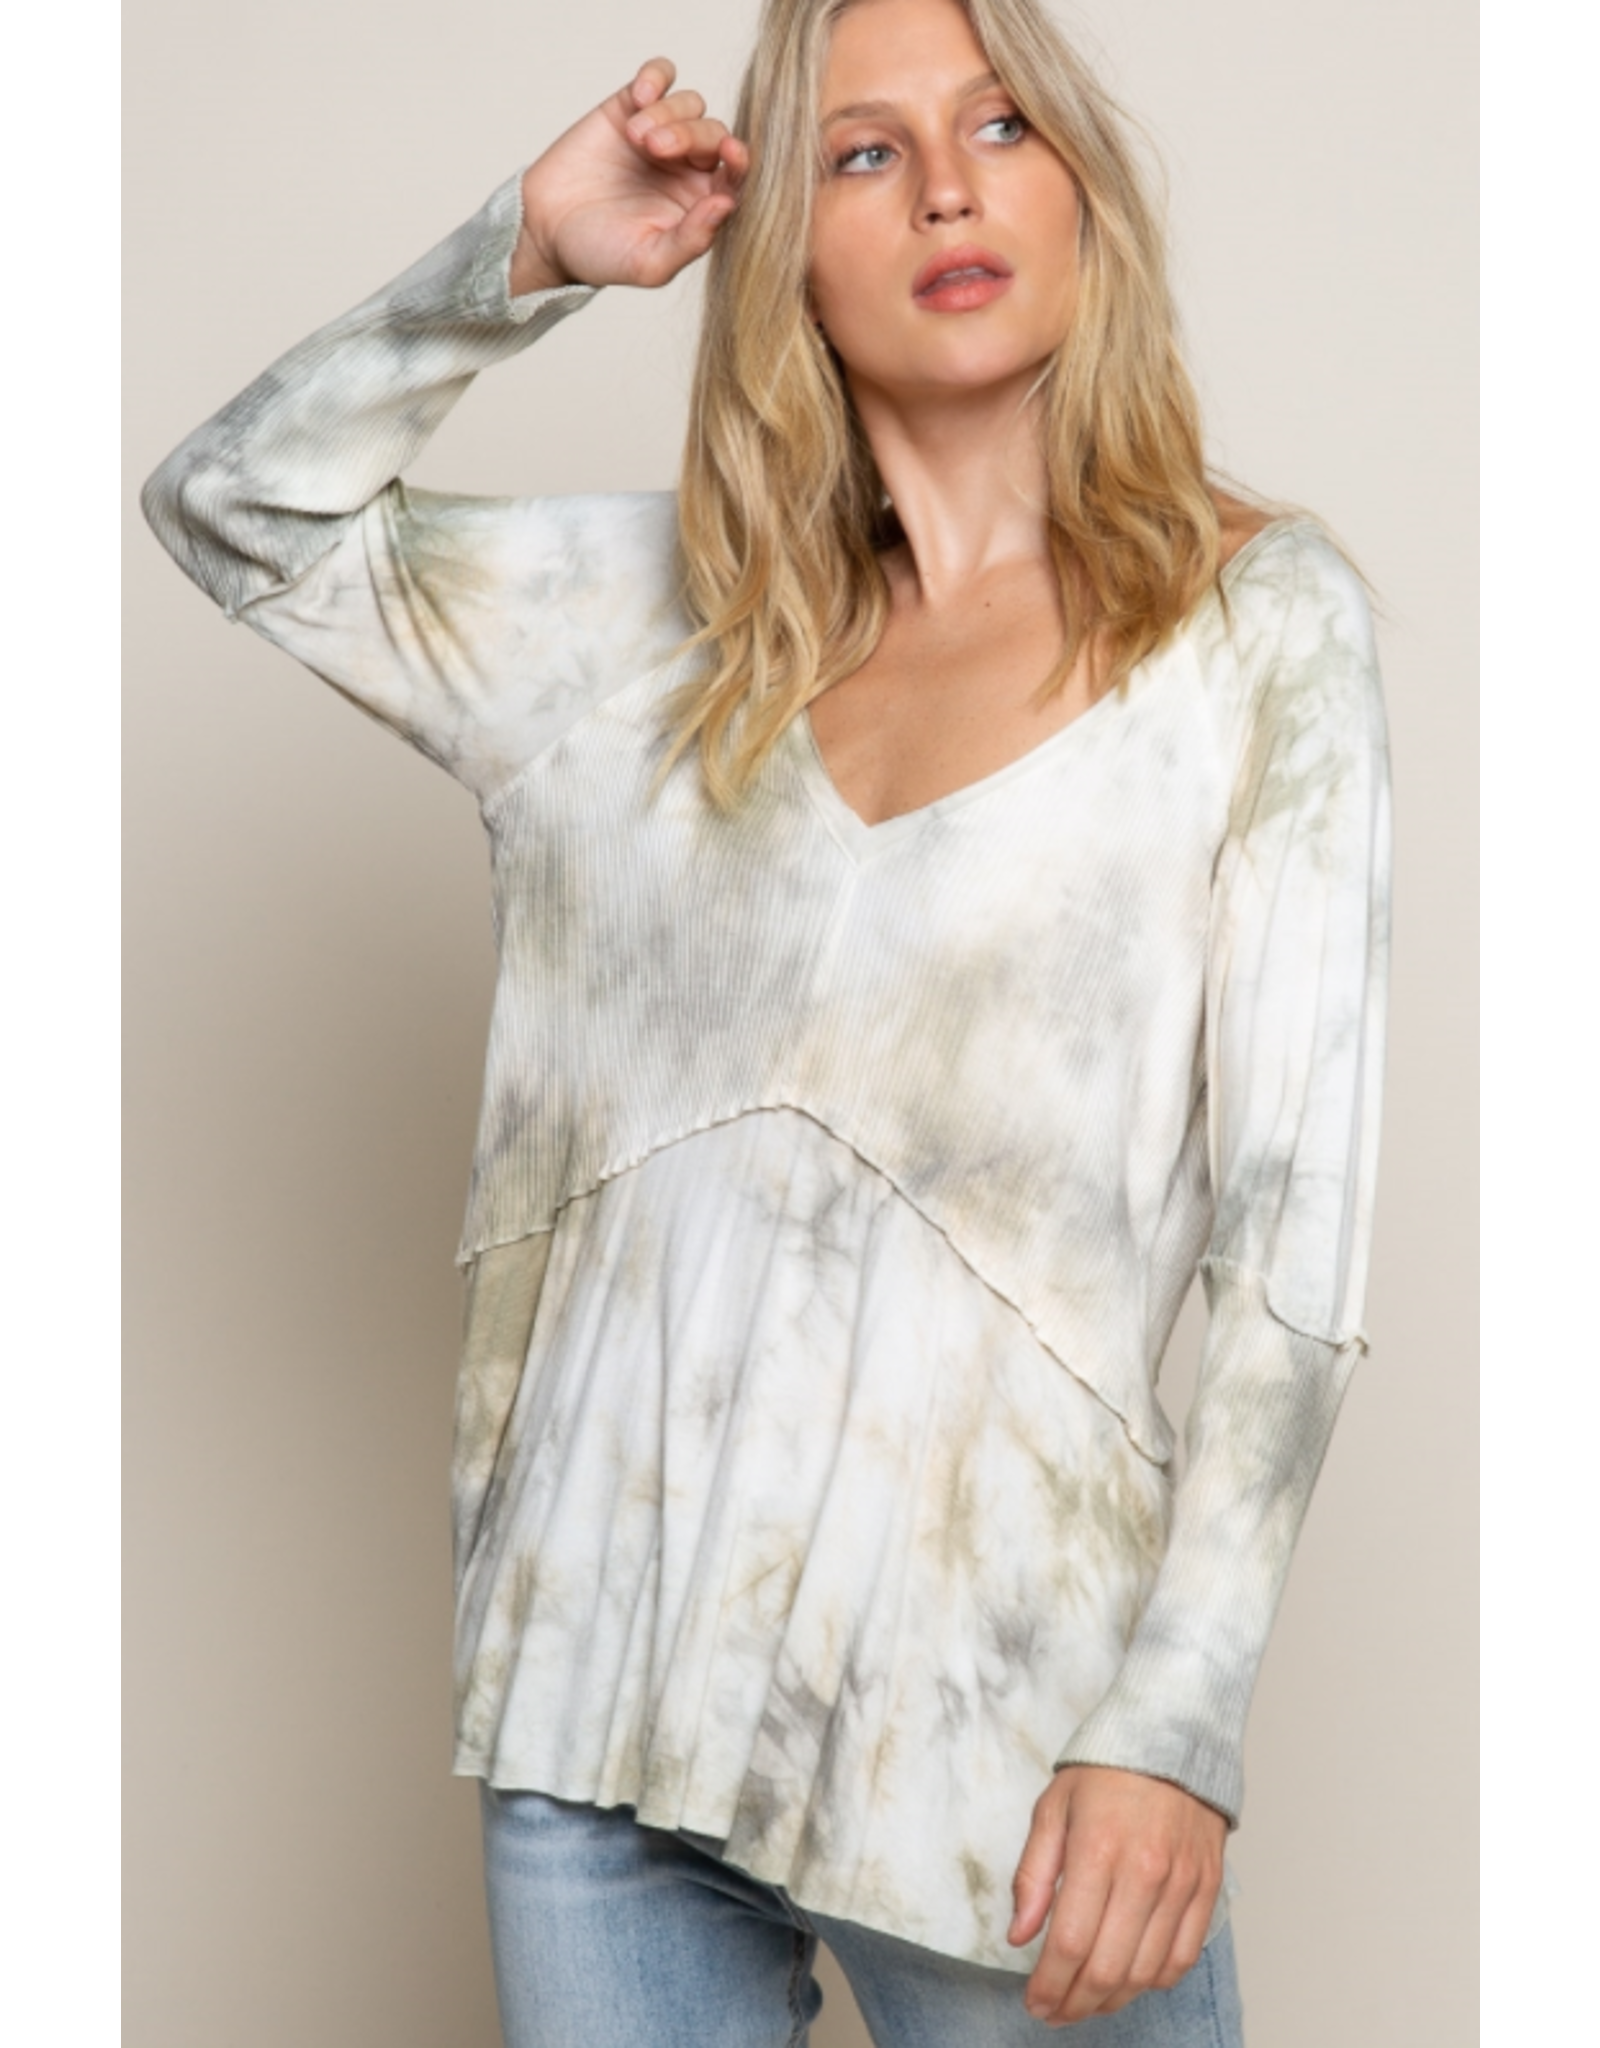 Green/Grey Tie-Dye Top